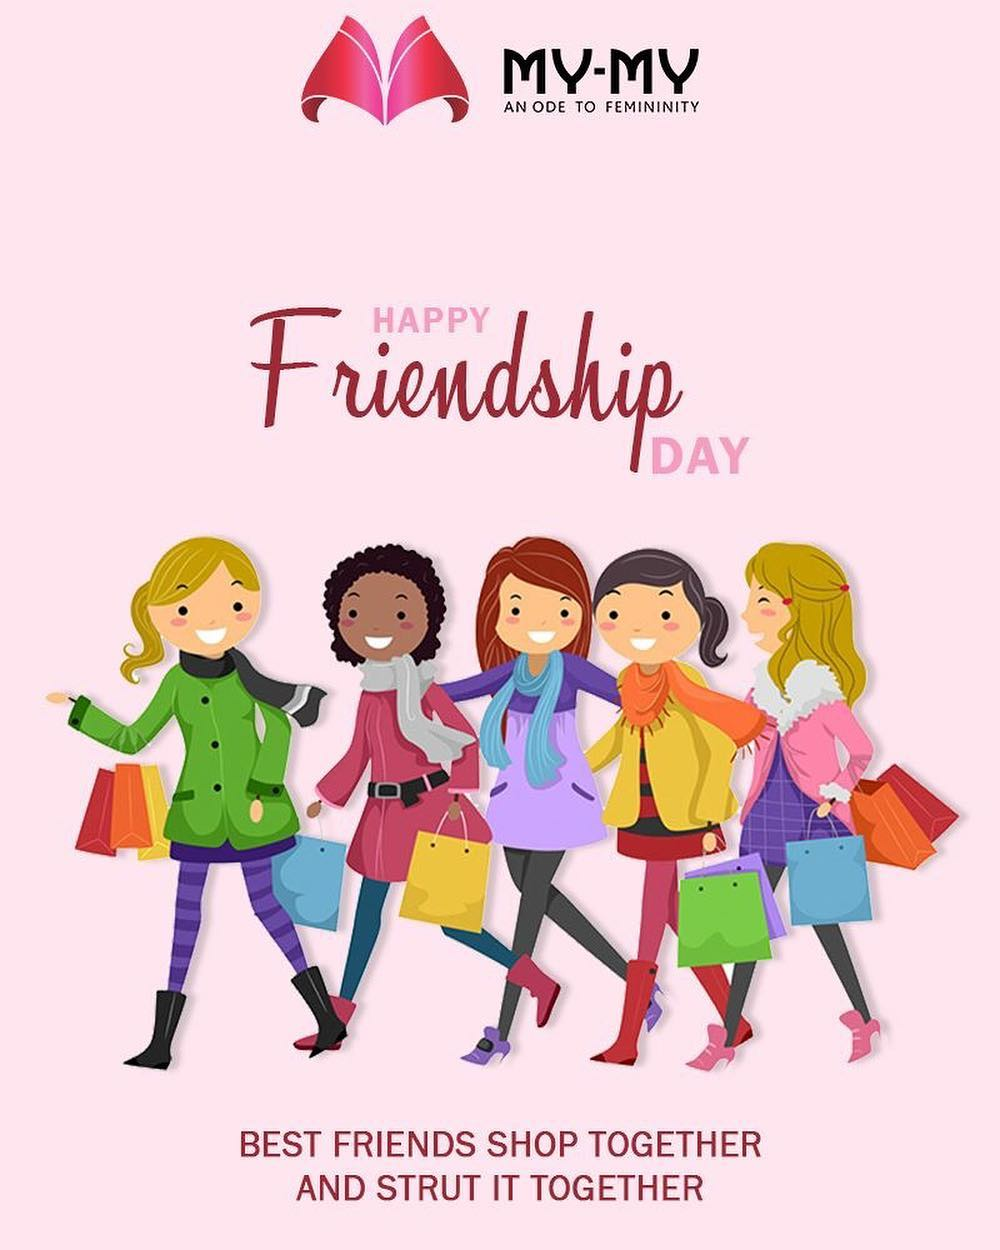 My-My,  HappyFriendshipDay, FriendshipDay18, FriendshipDay, FriendshipDayCelebration, Friendship, Friends, MyMy, MyMyAhmedabad, Fashion, Ahmedabad, FemaleFashion